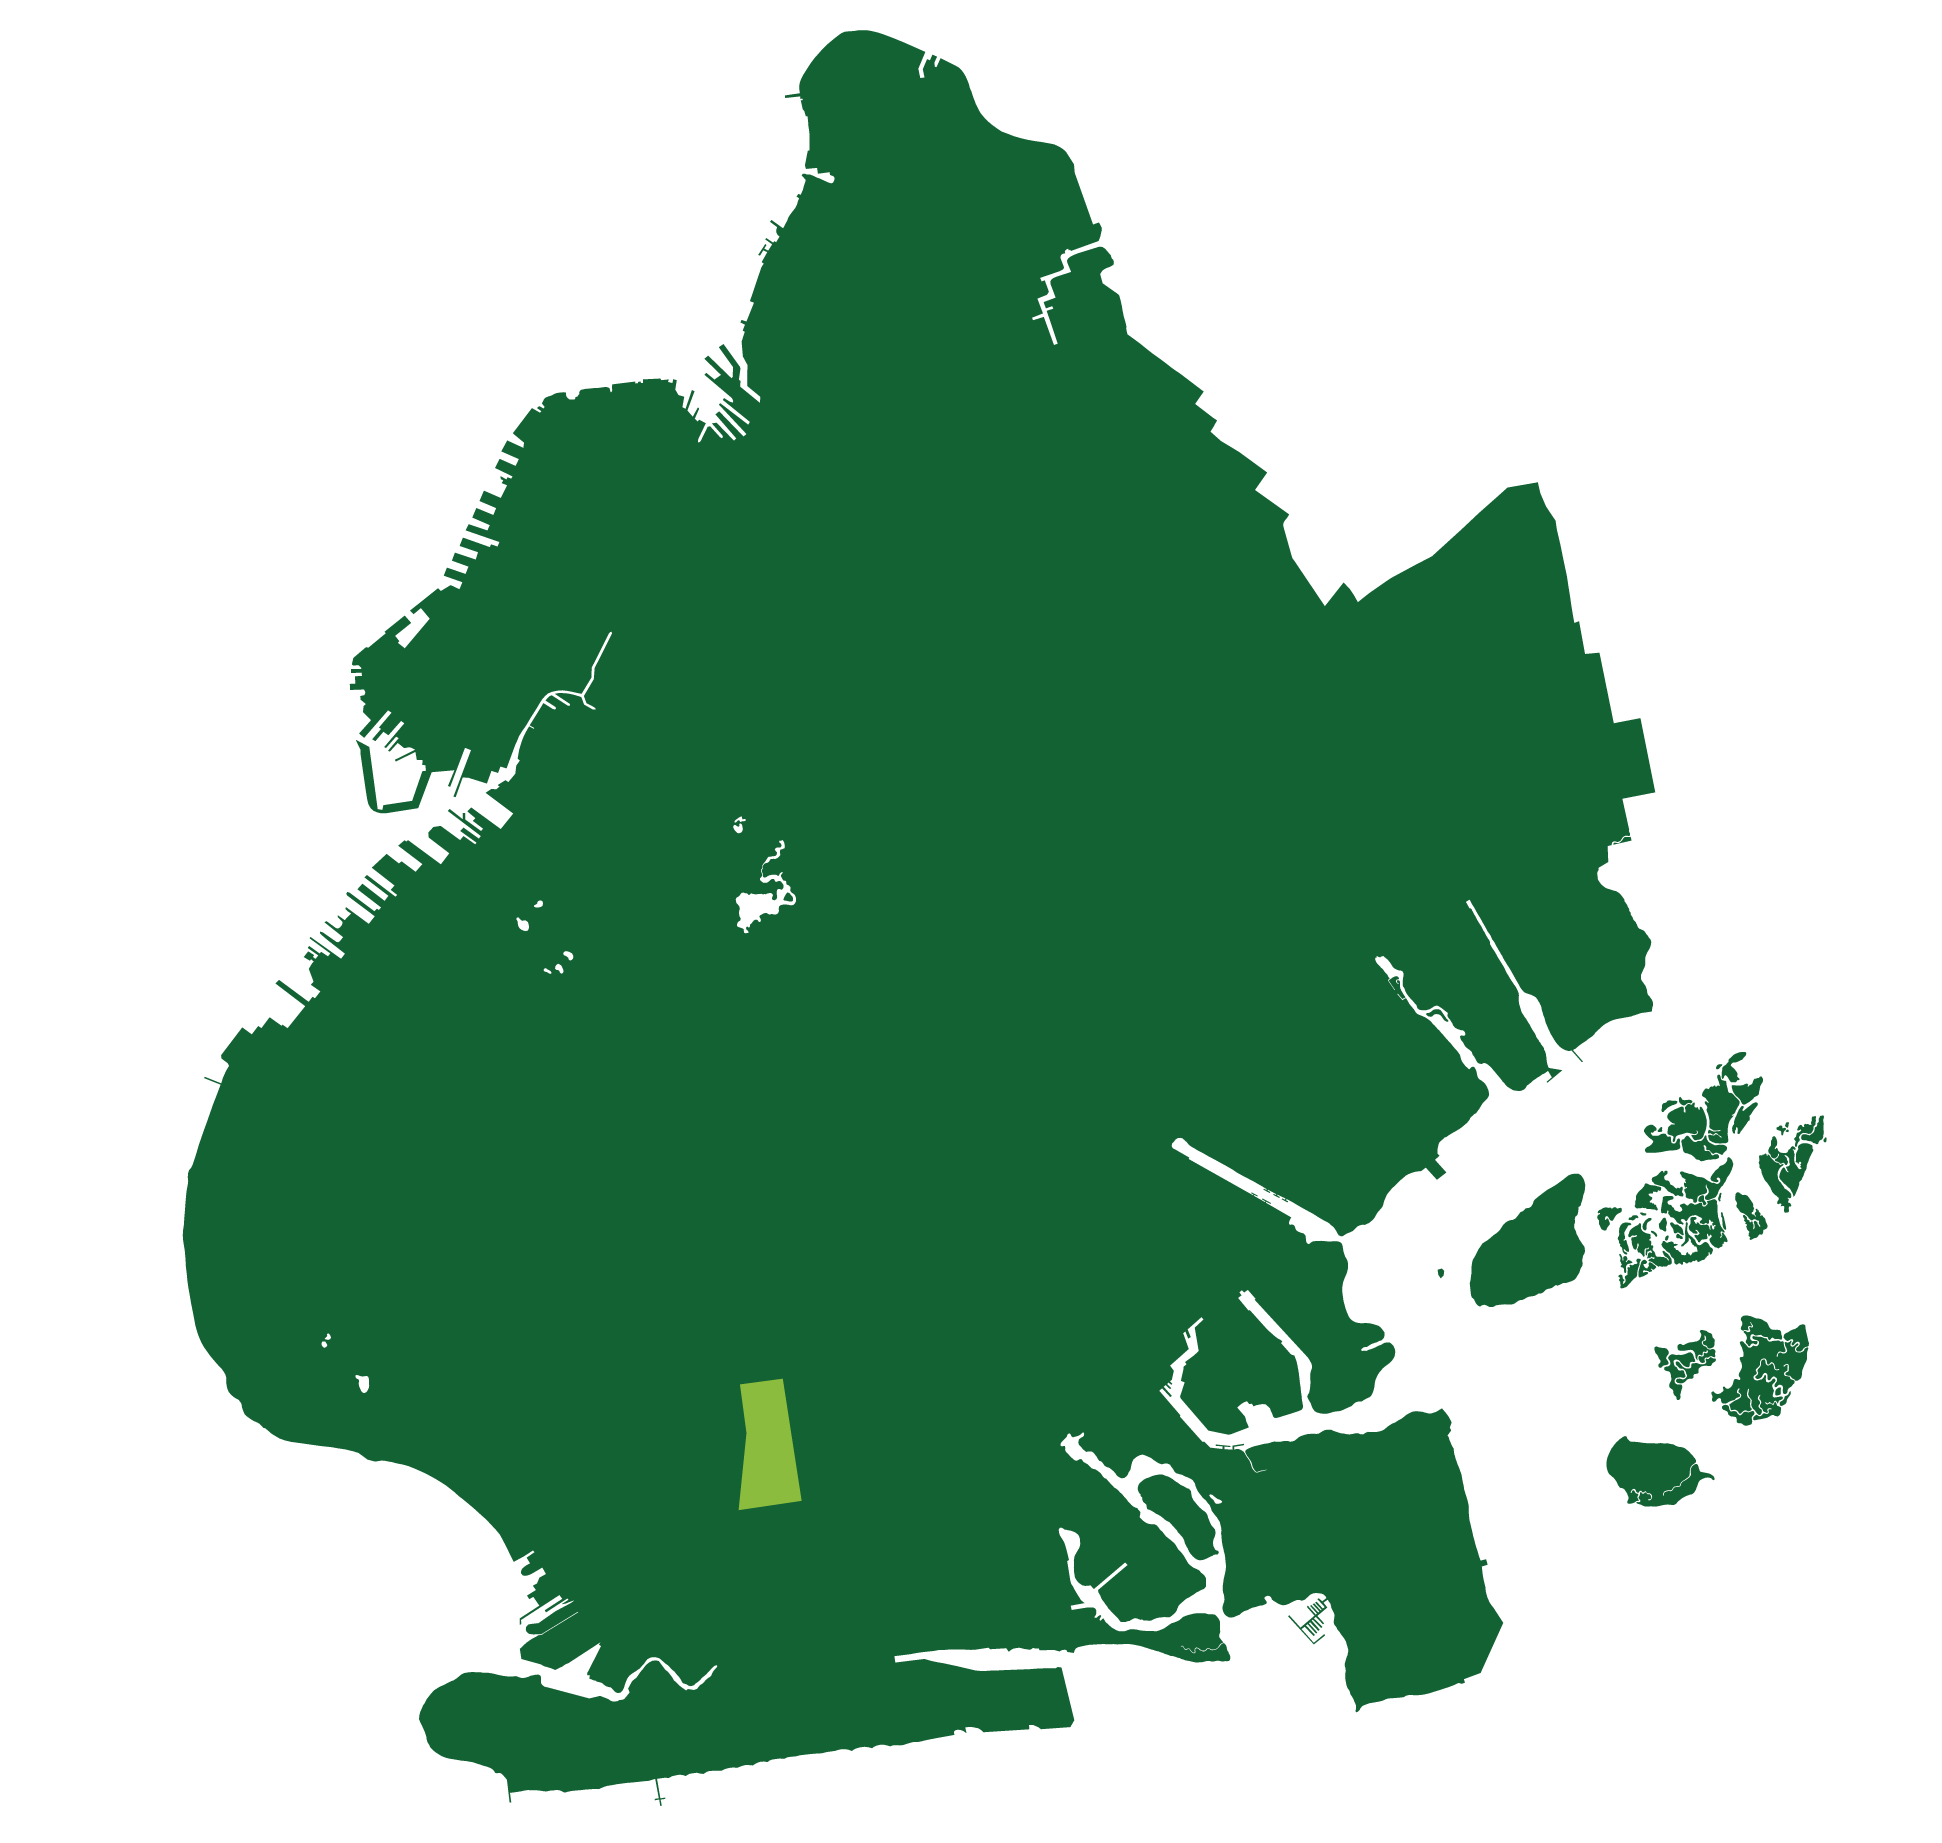 bigstock-Boroughs-Of-New-York-City--Ou-95666444-[Converted].png